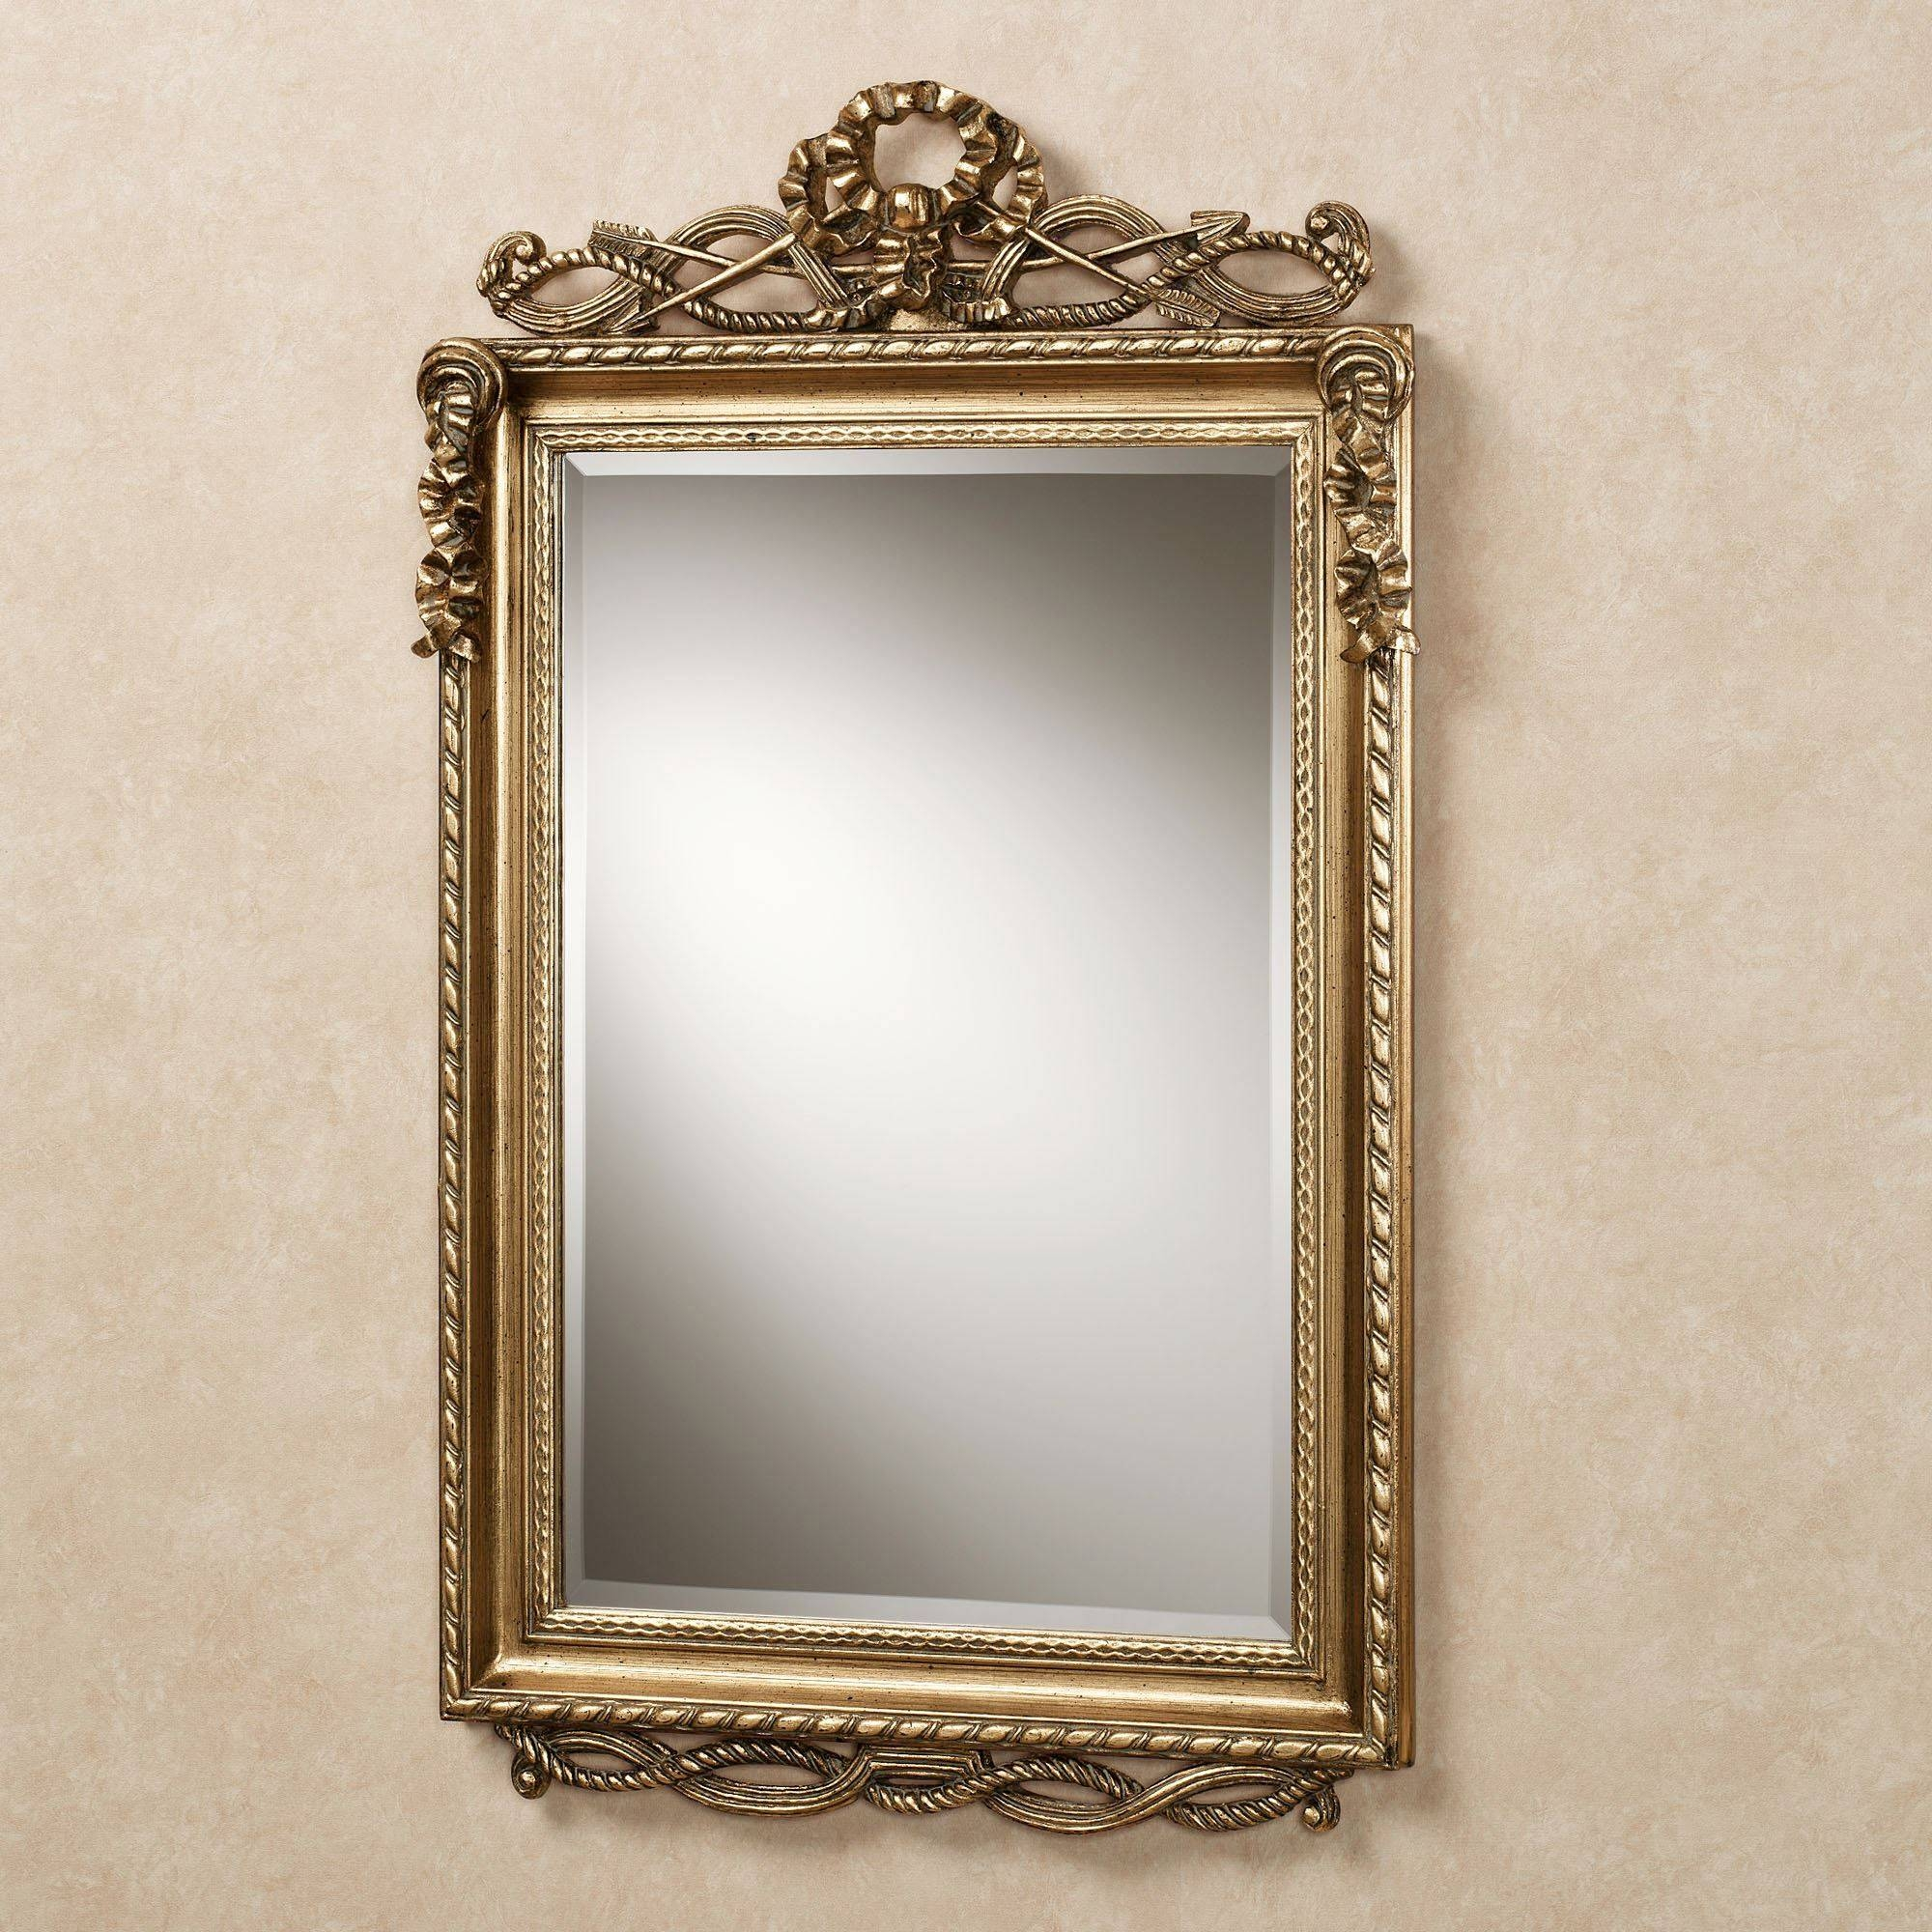 Lancaster Twist Design Rectangular Wall Mirror with regard to Antique Wall Mirrors (Image 11 of 15)